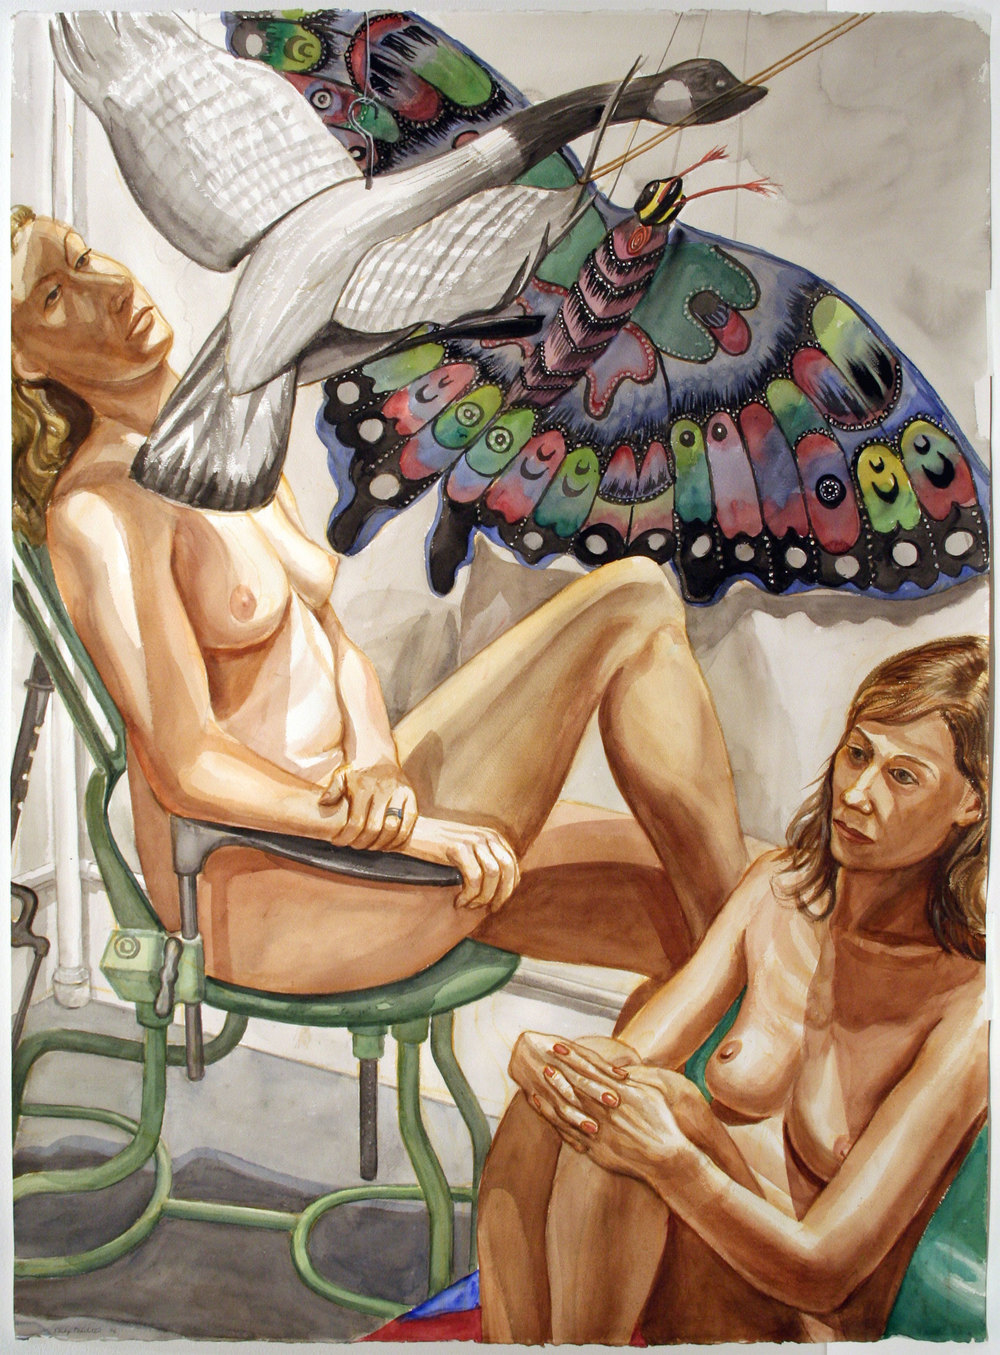 STUDY FOR TWO NUDES WITH FLYING GOOSE, BUTTERFLY AND EXAMINATION CHAIR , 2007 Watercolor on paper 46 1/4 x 34 inches